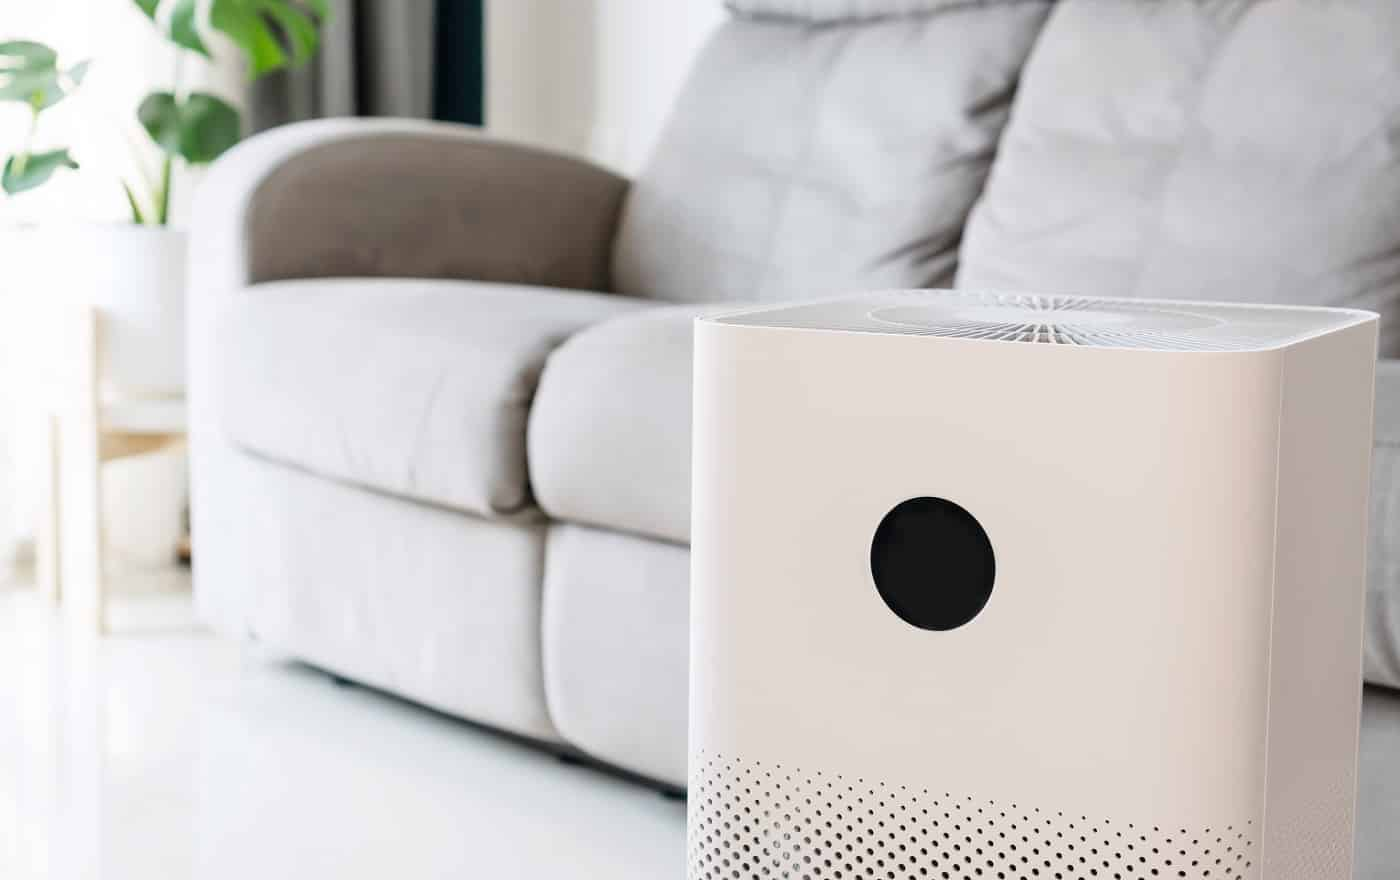 Closeup of air purifier in living room for wellbeing breathing fresh air while dust air pollution situation outside is really bad. PM 2.5, healthy concept